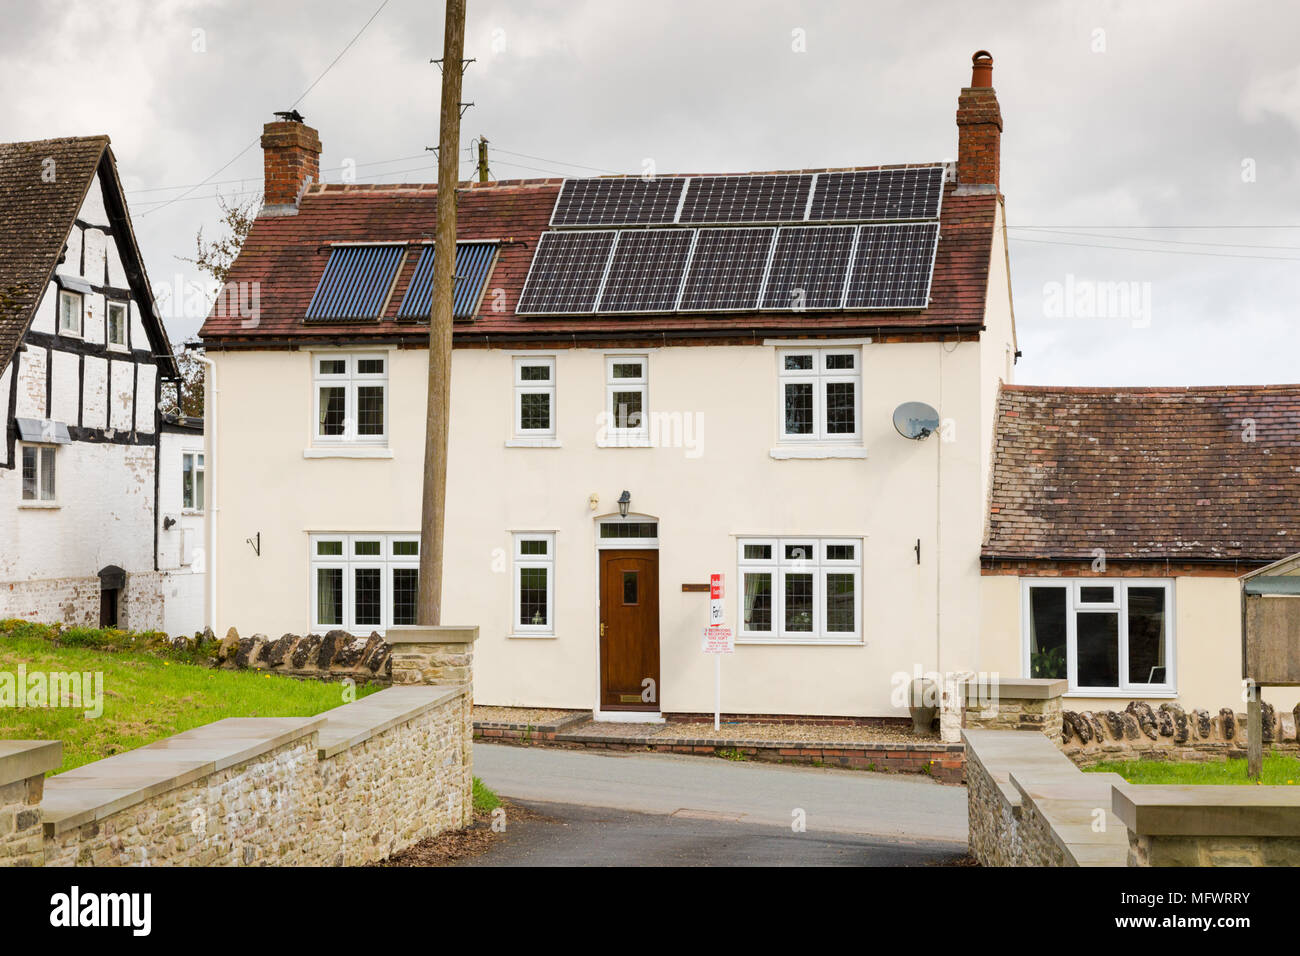 House in Worcestershire with solar panels on the roof, UK - Stock Image